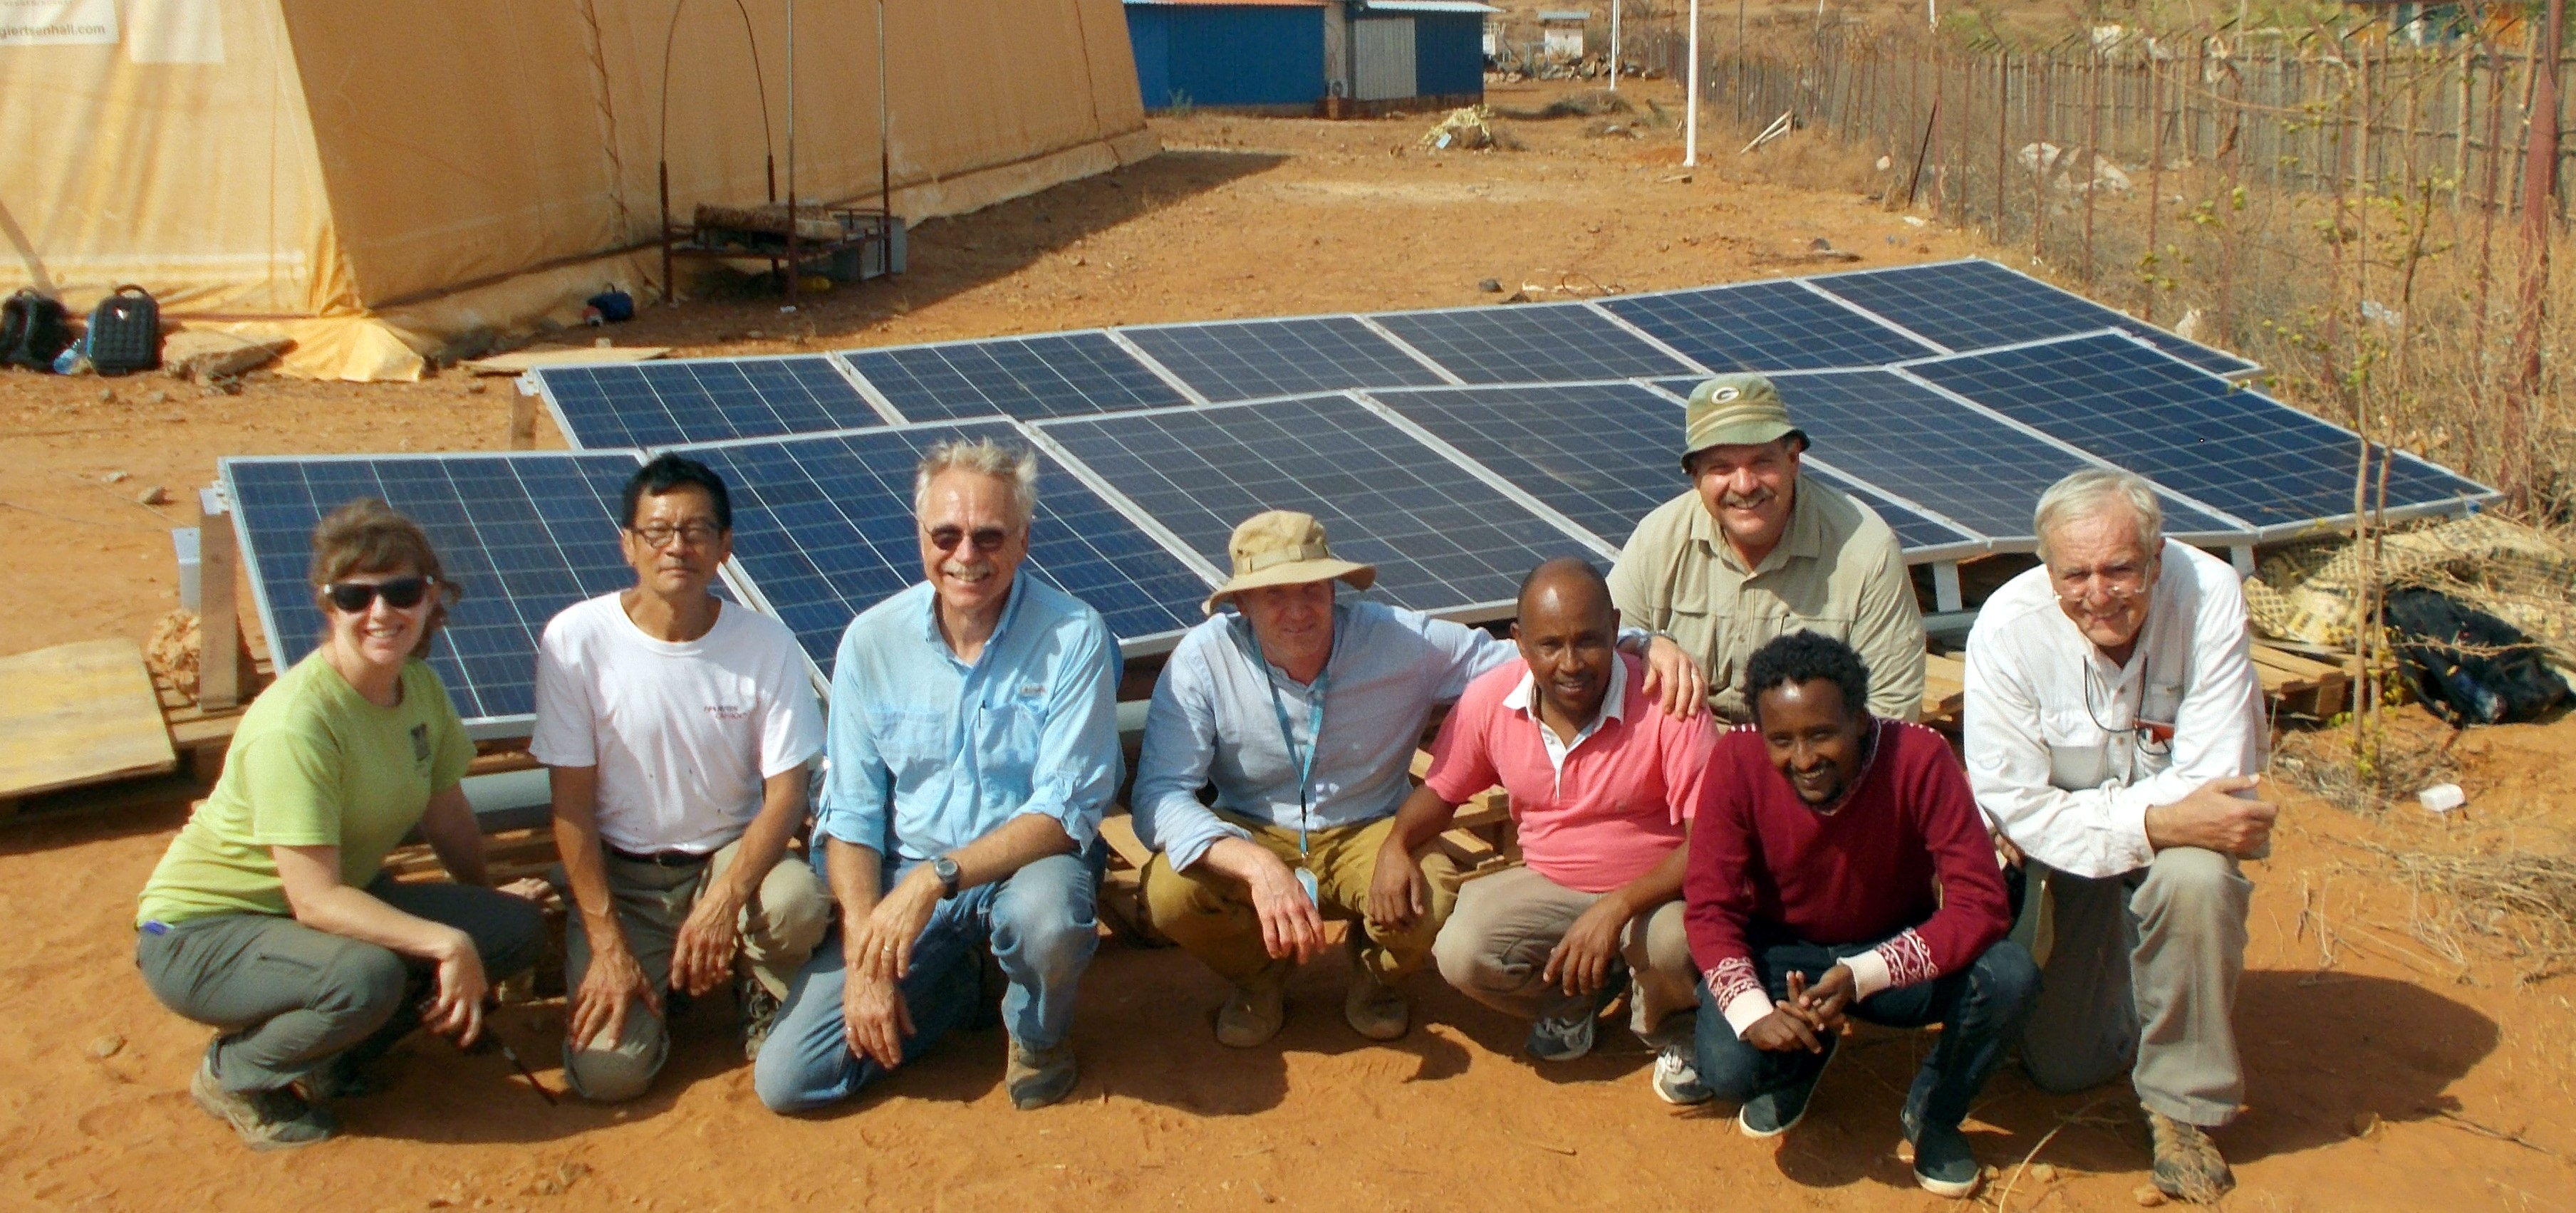 Clean Power and Job Creation: Improving the Lives of Somali